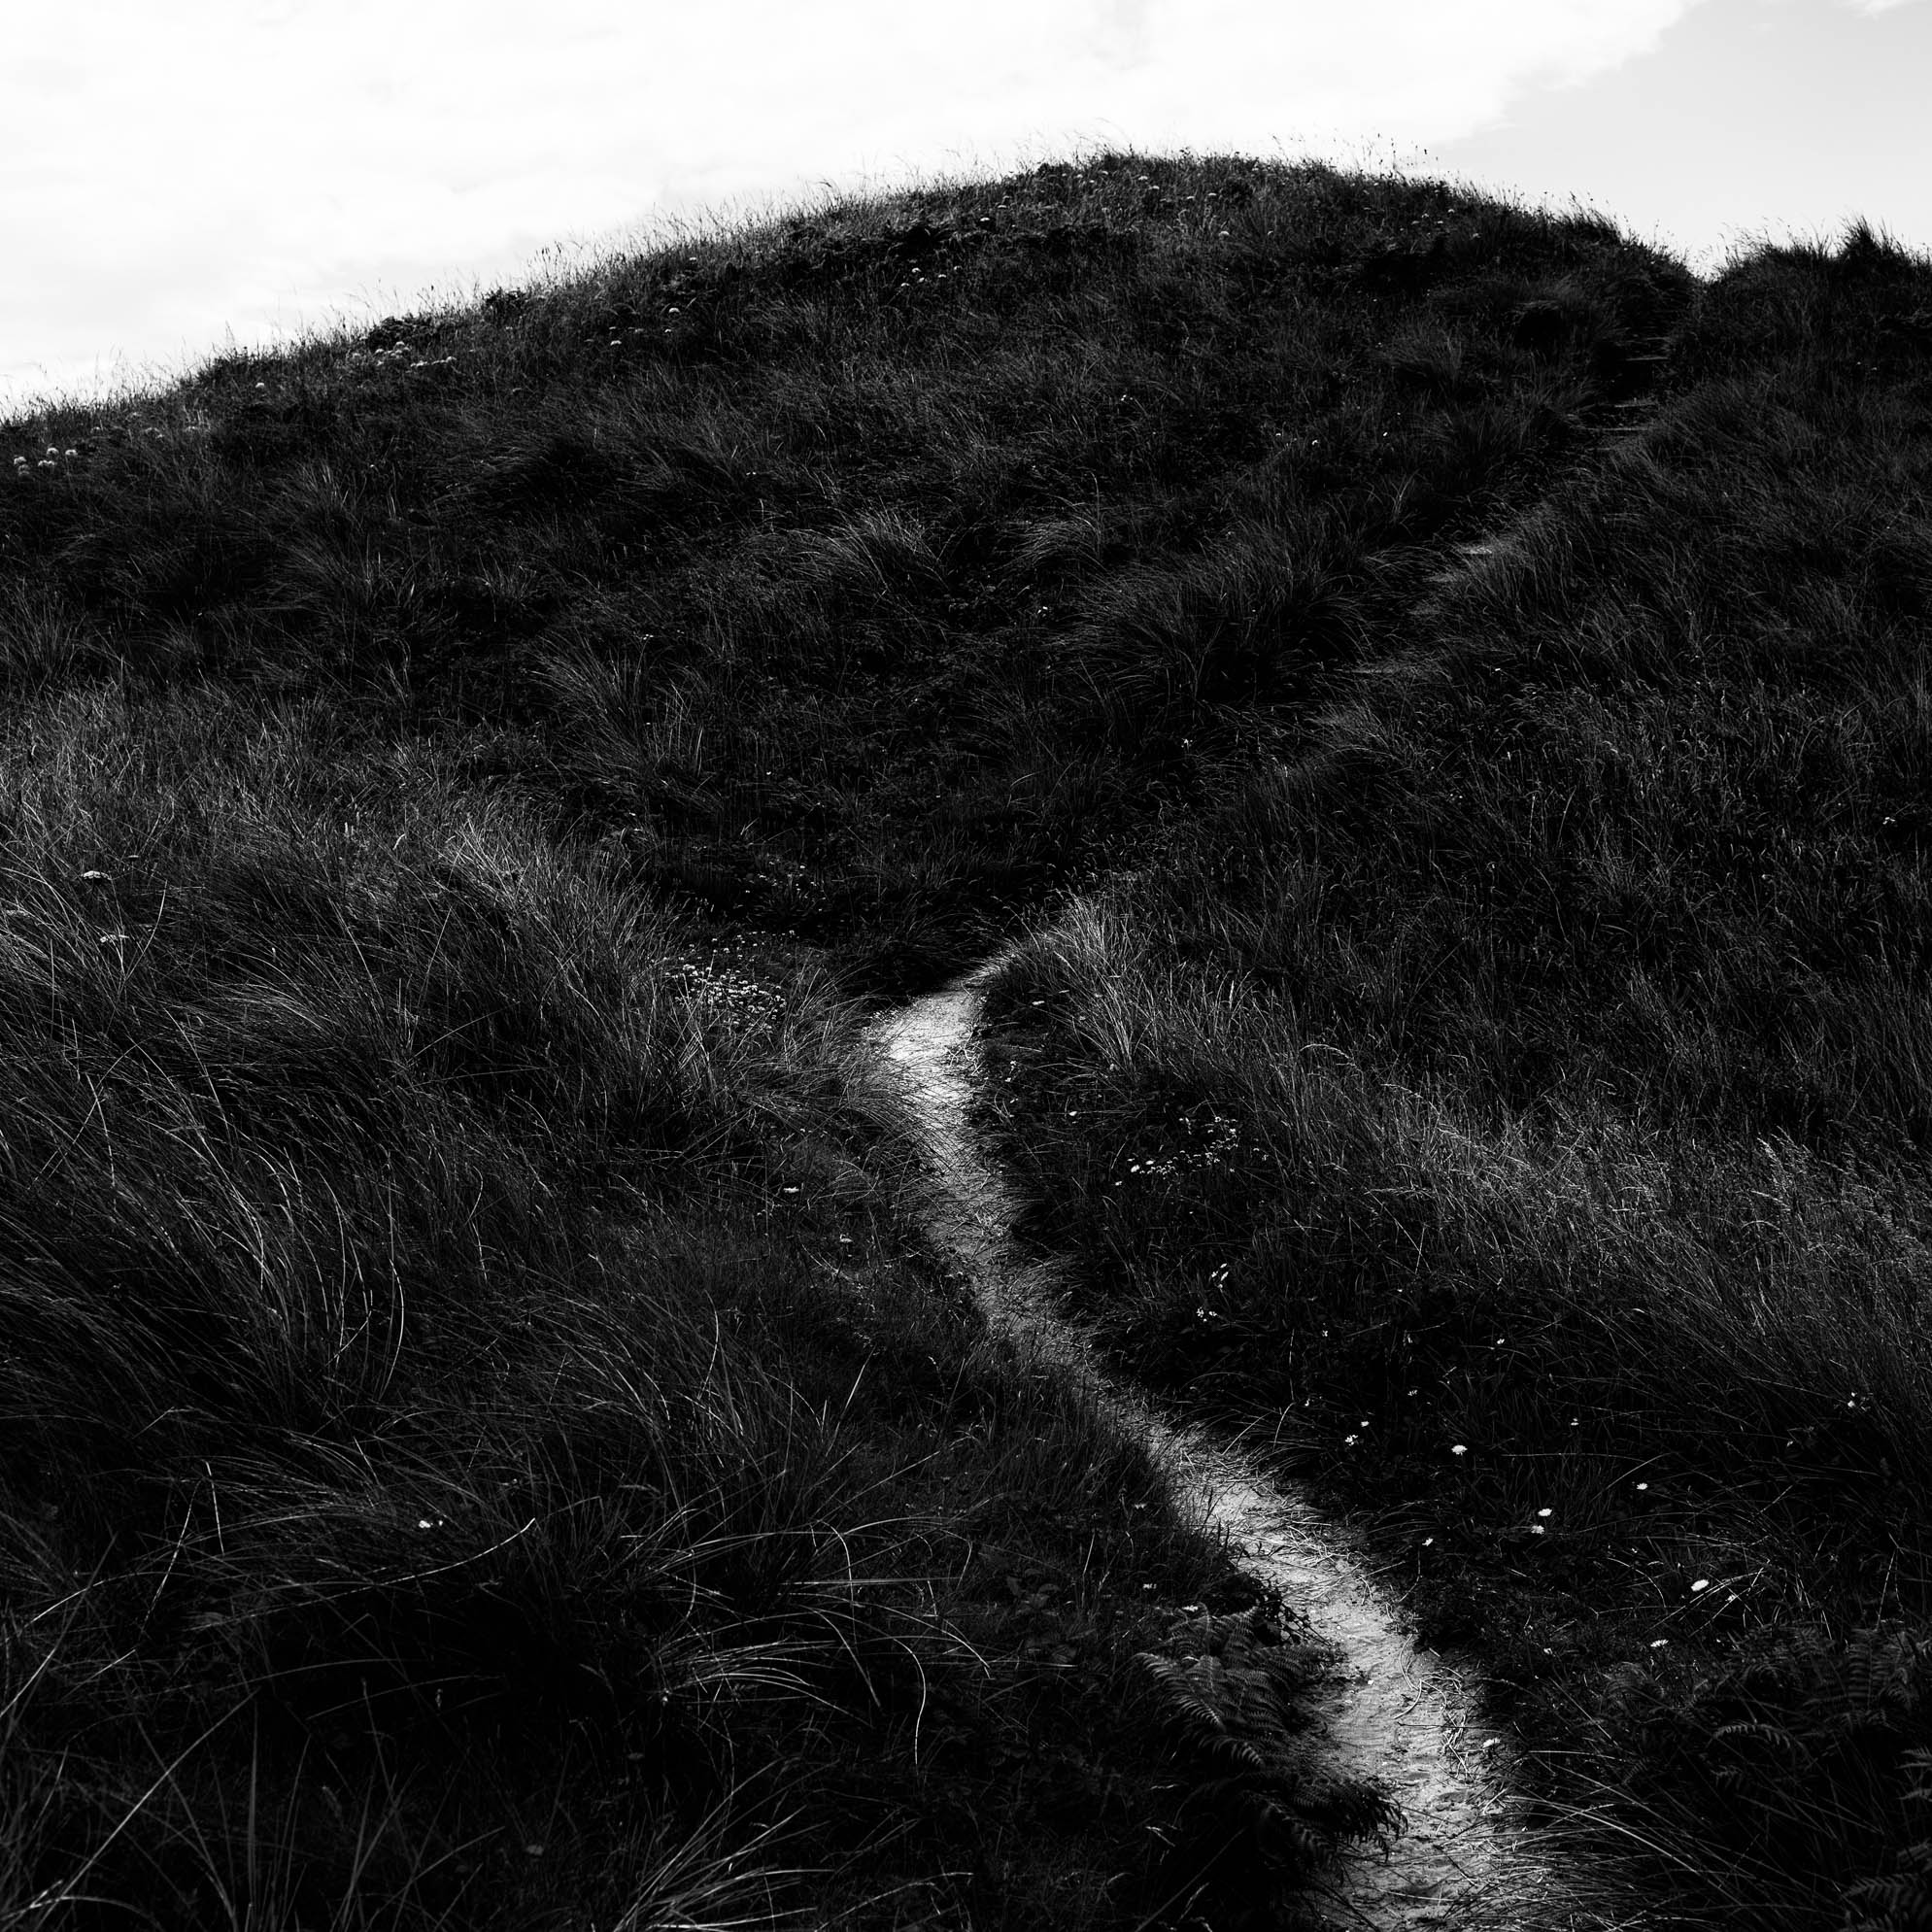 A narrow path in the grass leading to the edge of the cliff on Llanddwyn Island